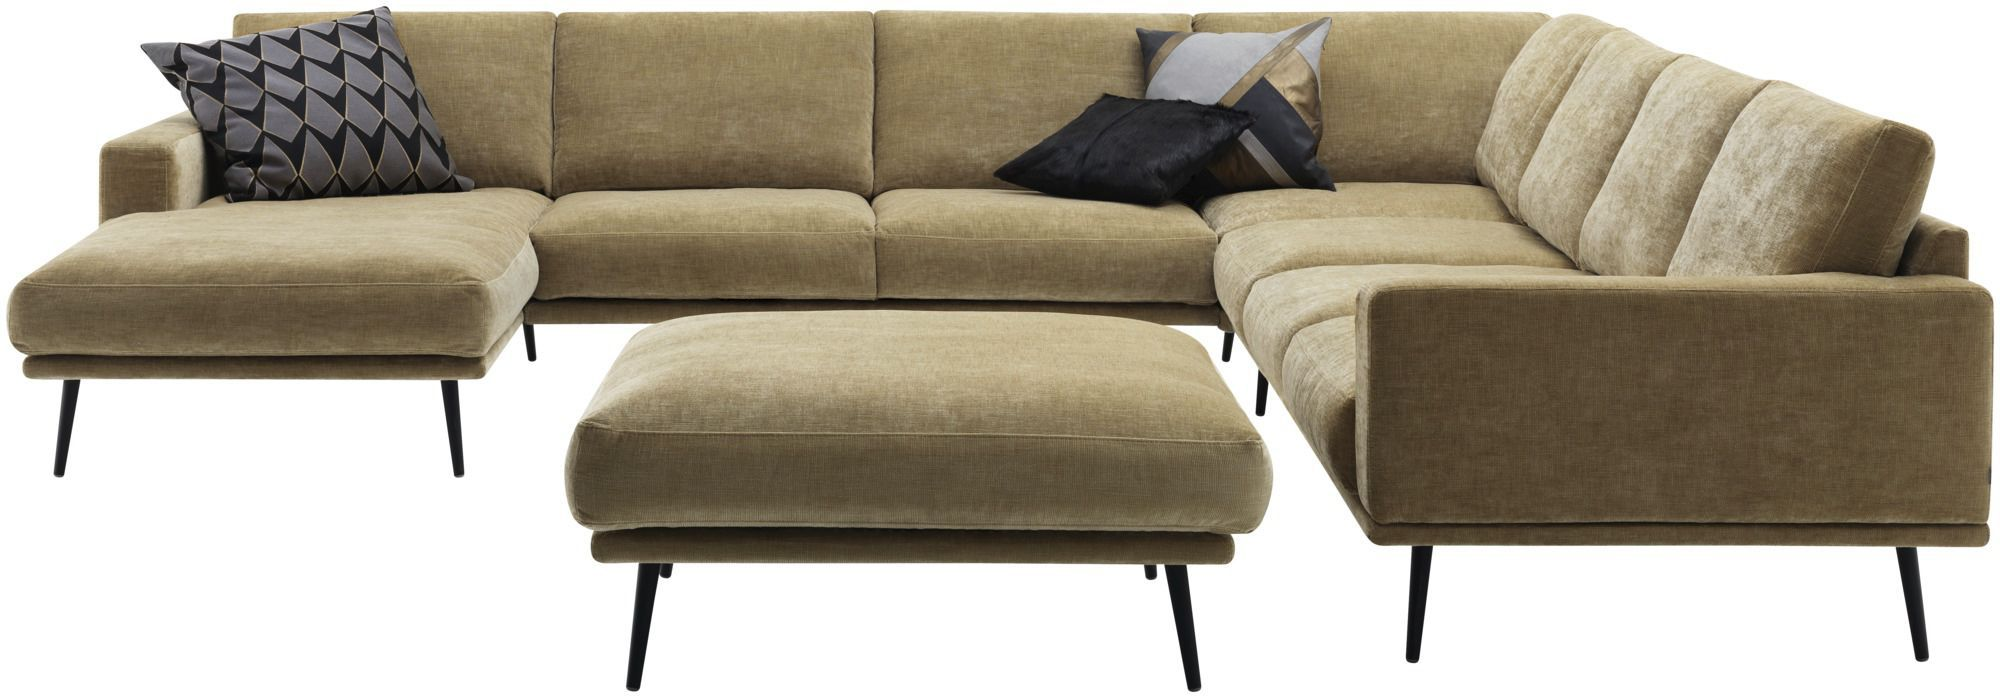 Superior ... Corner Sofa / Modular / Contemporary / Leather CARLTON By Anders  Nørgaard BoConcept ...